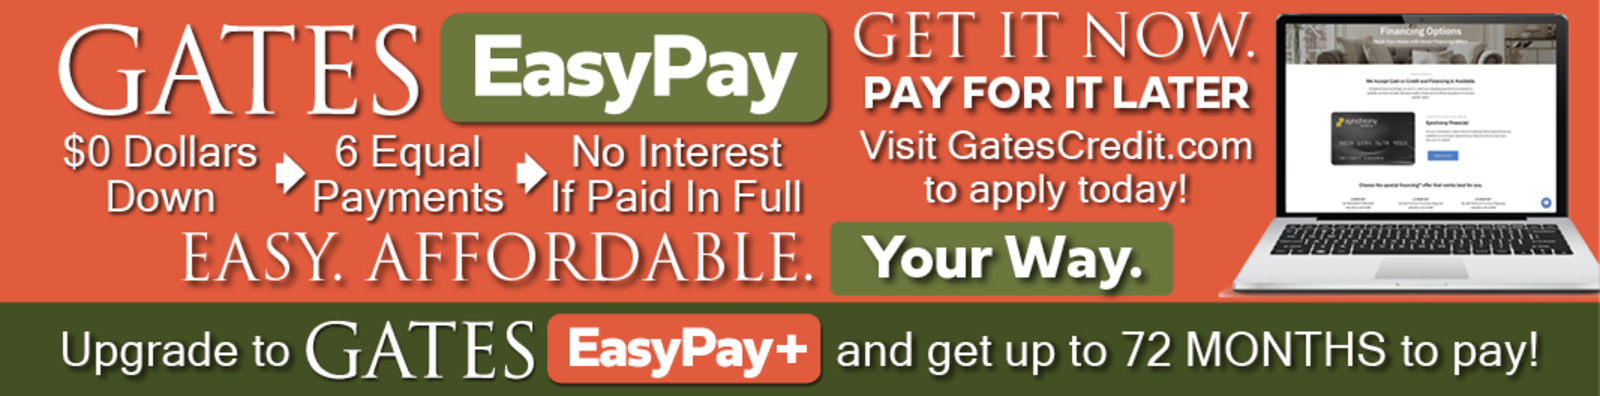 Gates EasyPay Options